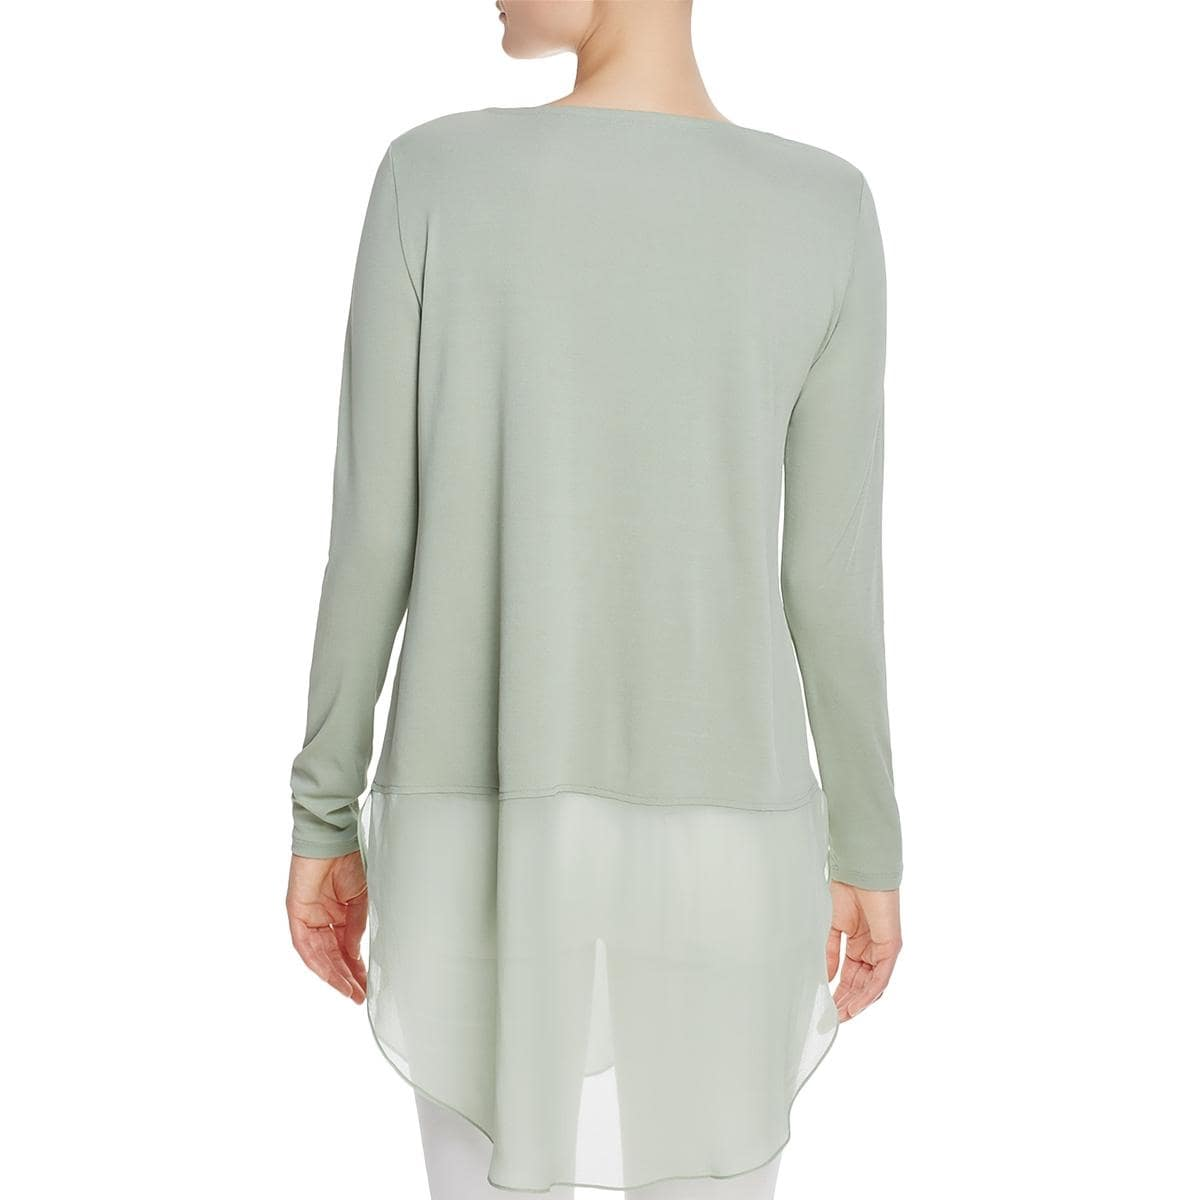 fd706f172ac2d4 Shop Eileen Fisher Womens Petites Tunic Top Silk Bateau Neck - Free  Shipping Today - Overstock - 22996605